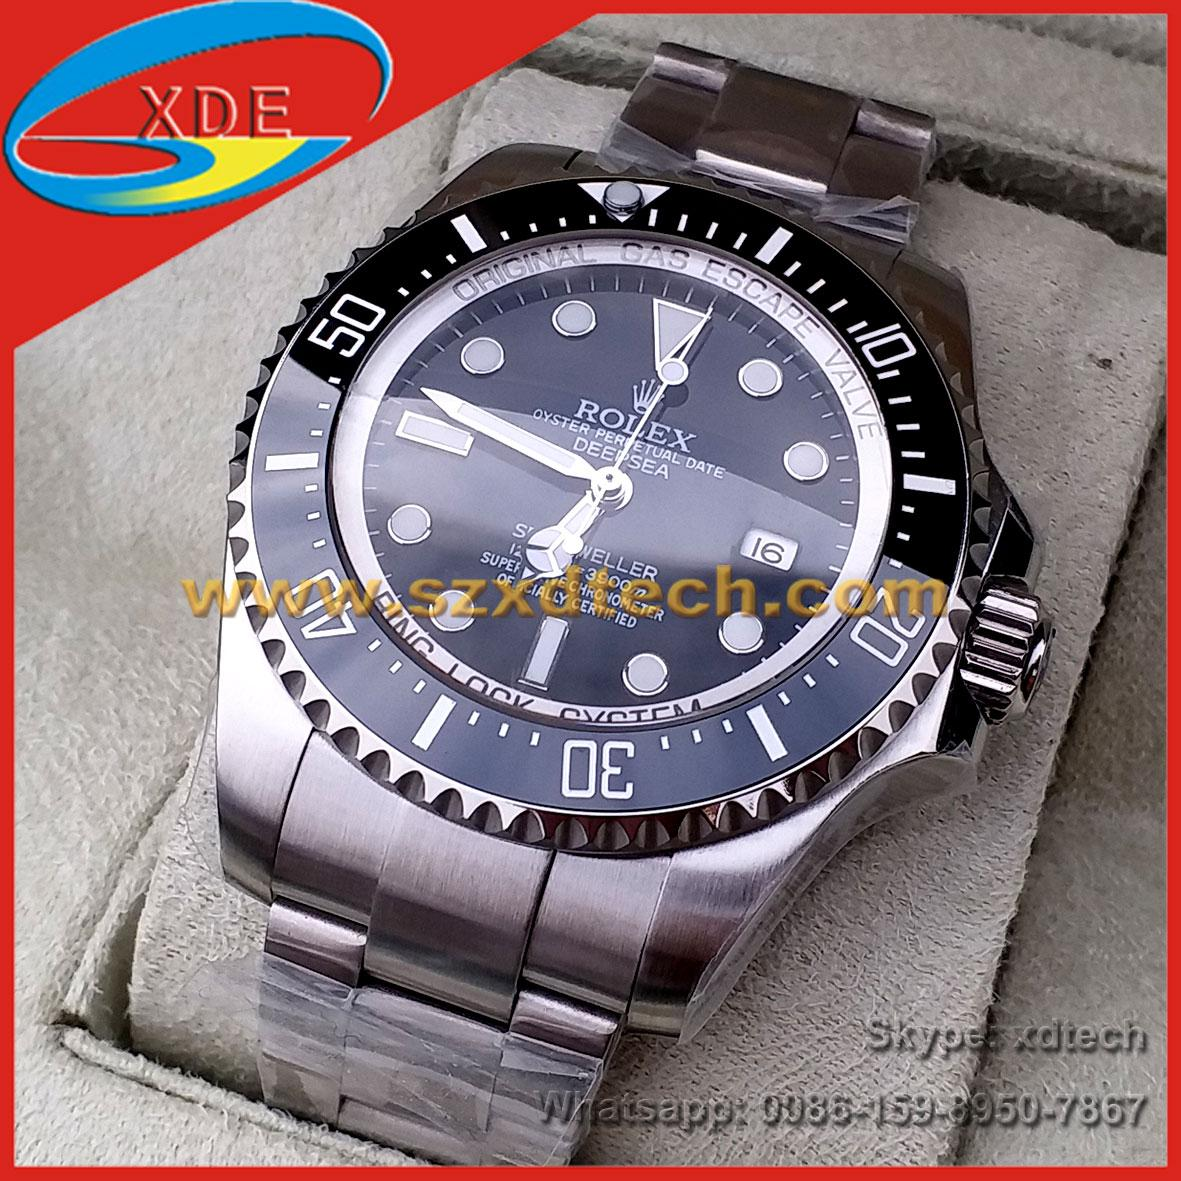 Rolex Datejust Submarine ROLEX YACHT-MASTER Rolex Watches All Colors Avaliable